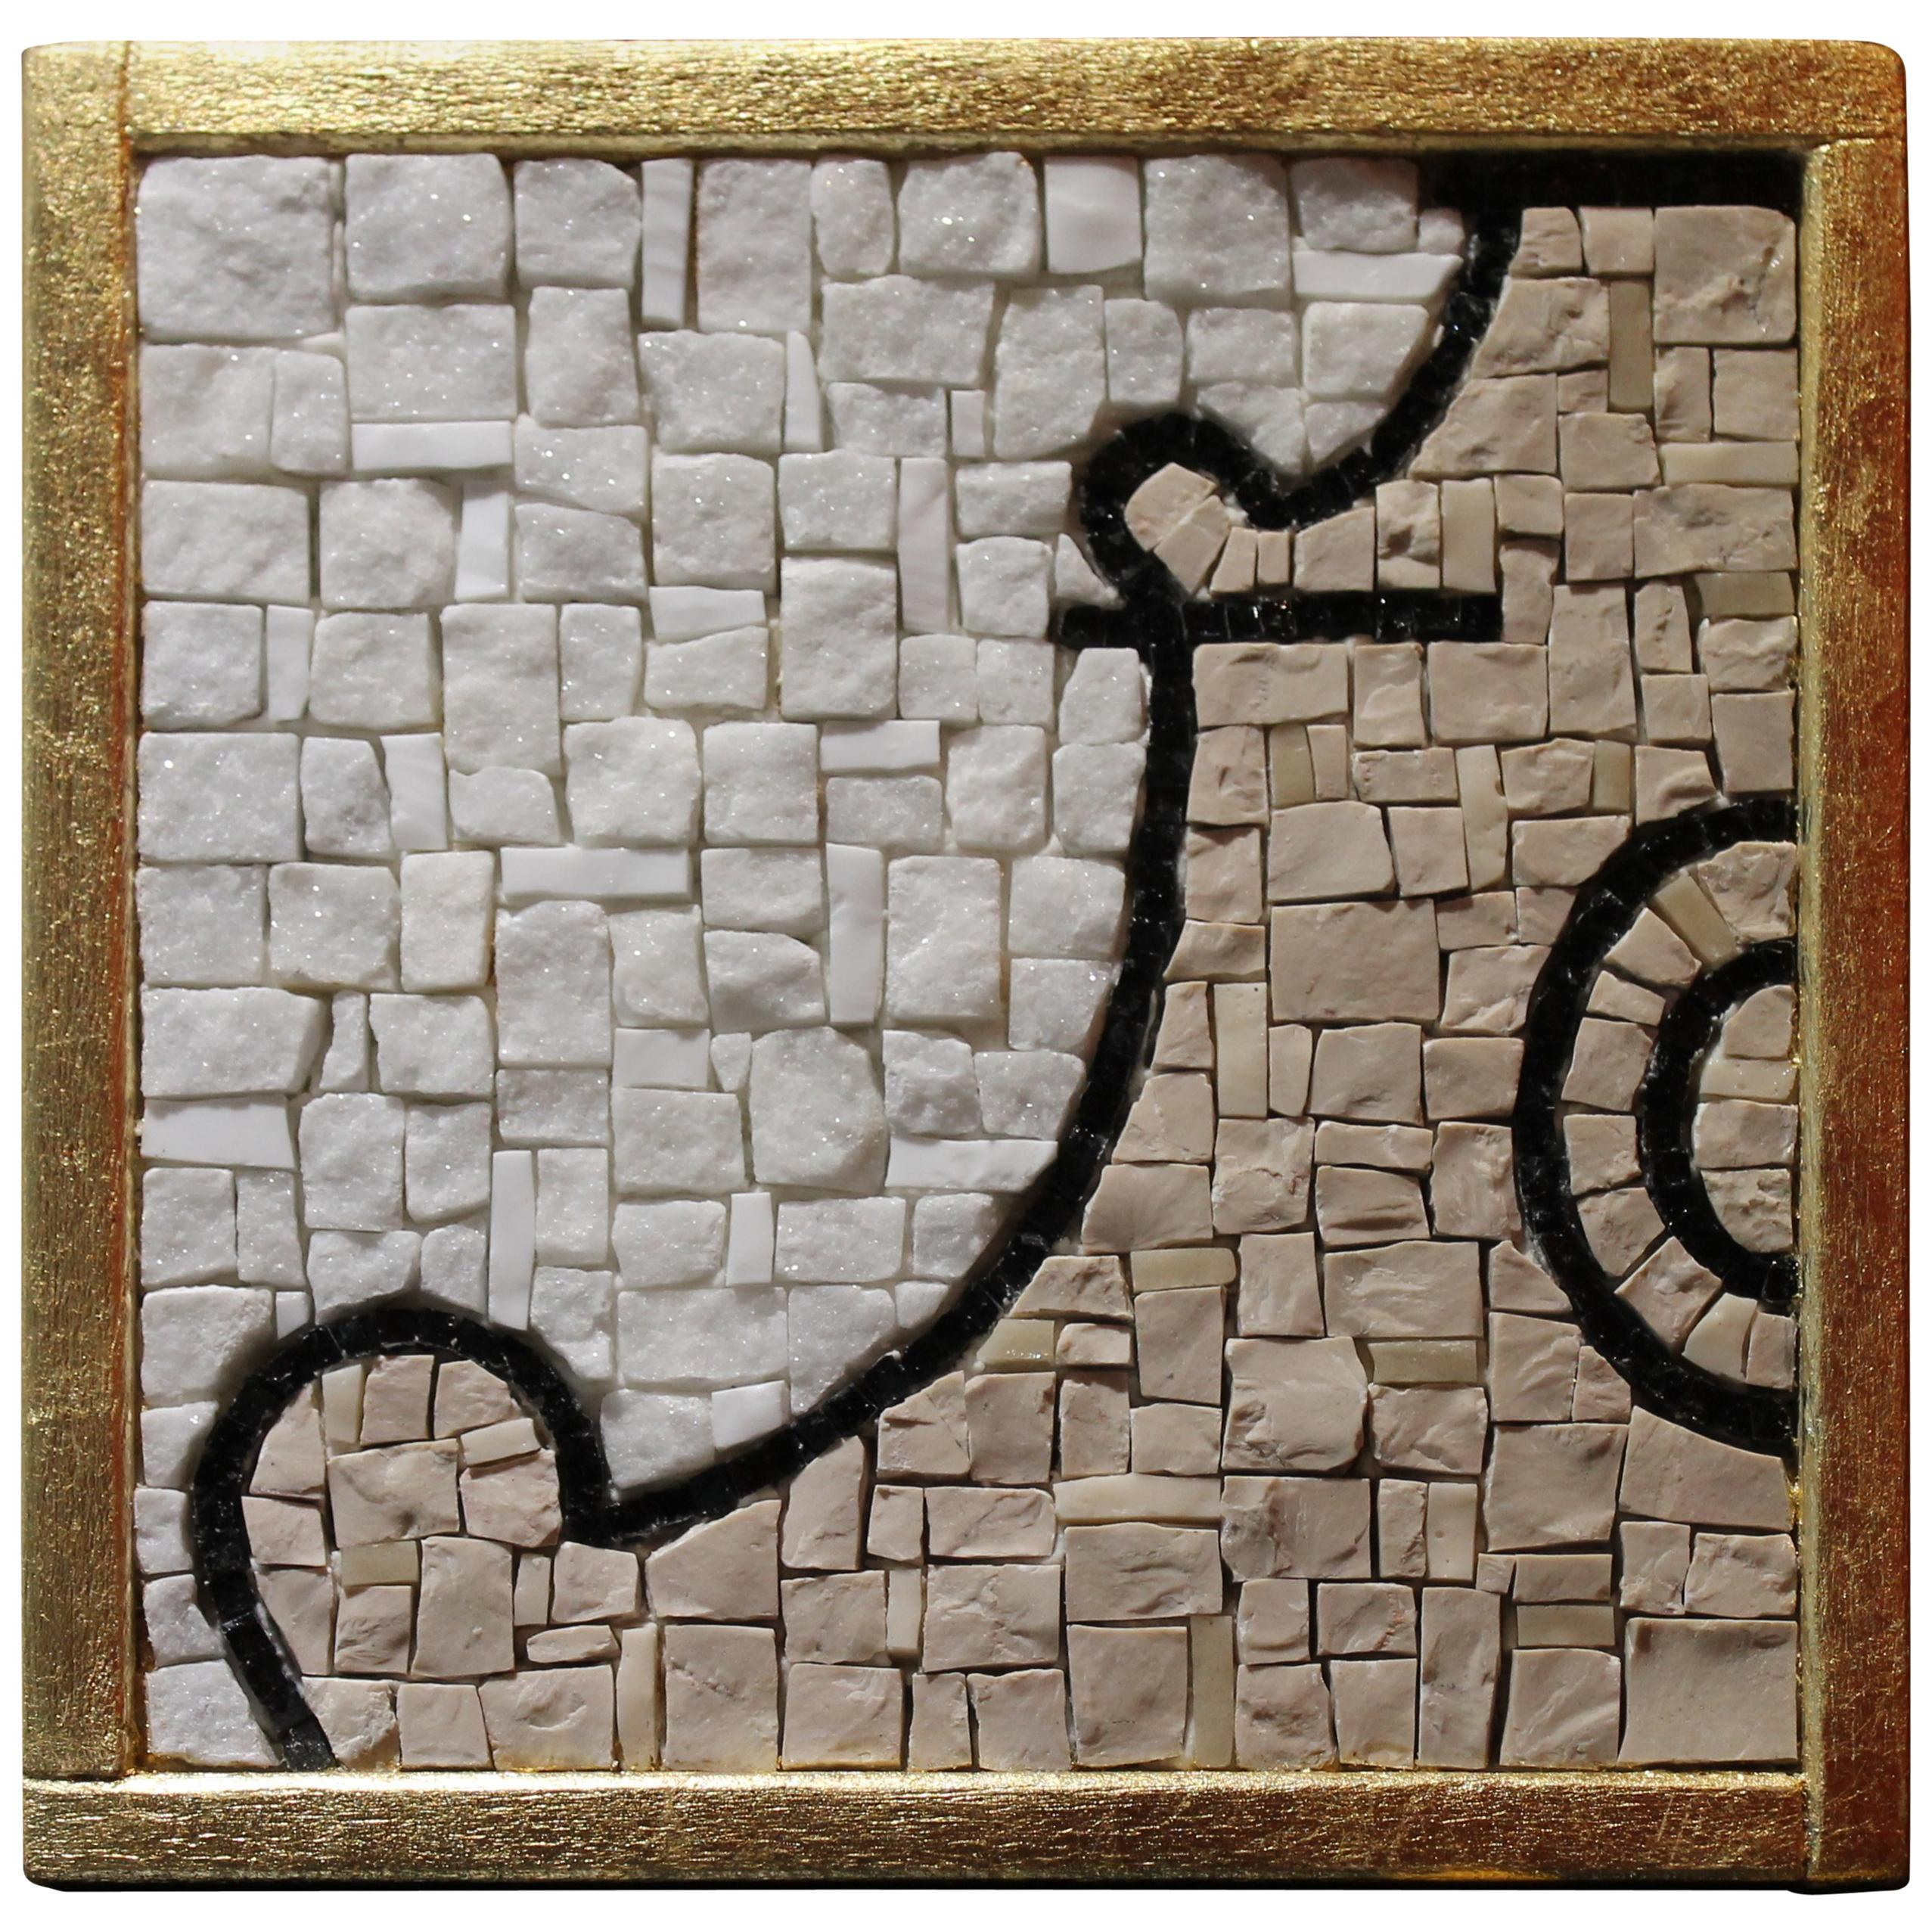 Italian Black and White Carrara Marble Mosaic Tiles with Florentine Monuments